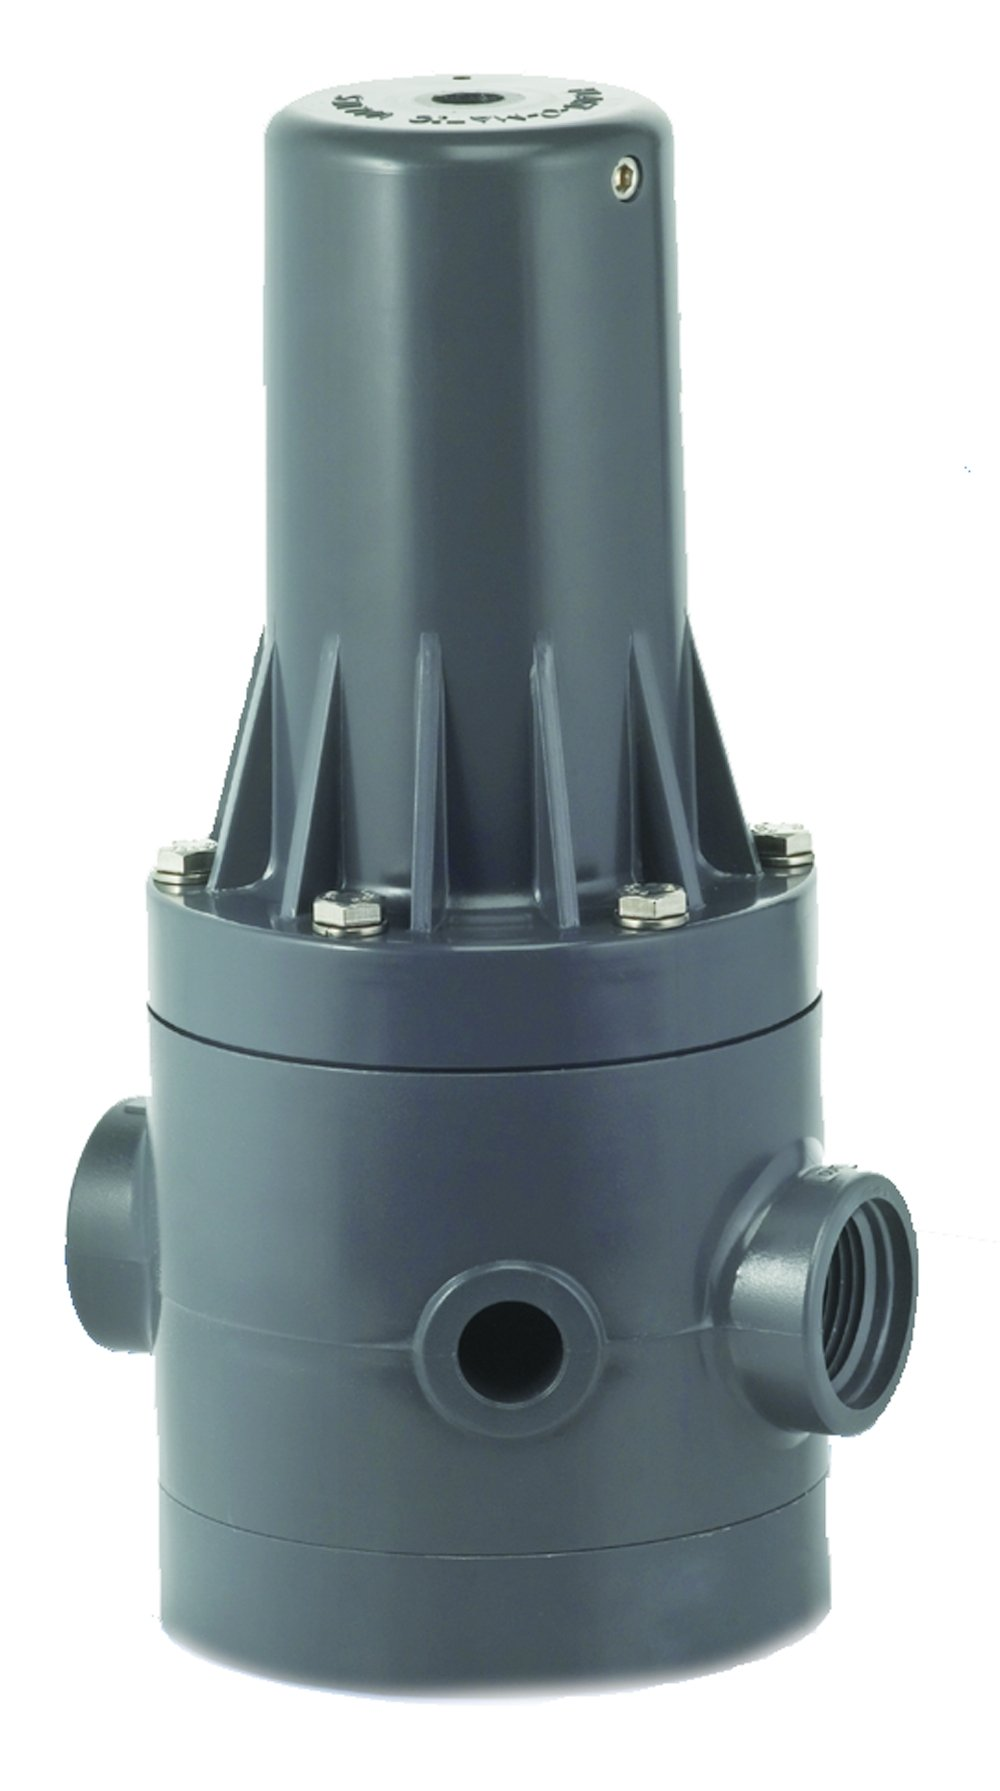 Plast-O-Matic PRHM Series PVC Pressure Regulator, For Corrosive and Ultra-Pure Liquids, 5 - 125 psi Regulating range, 3/4'' x 3/4'' NPT Female